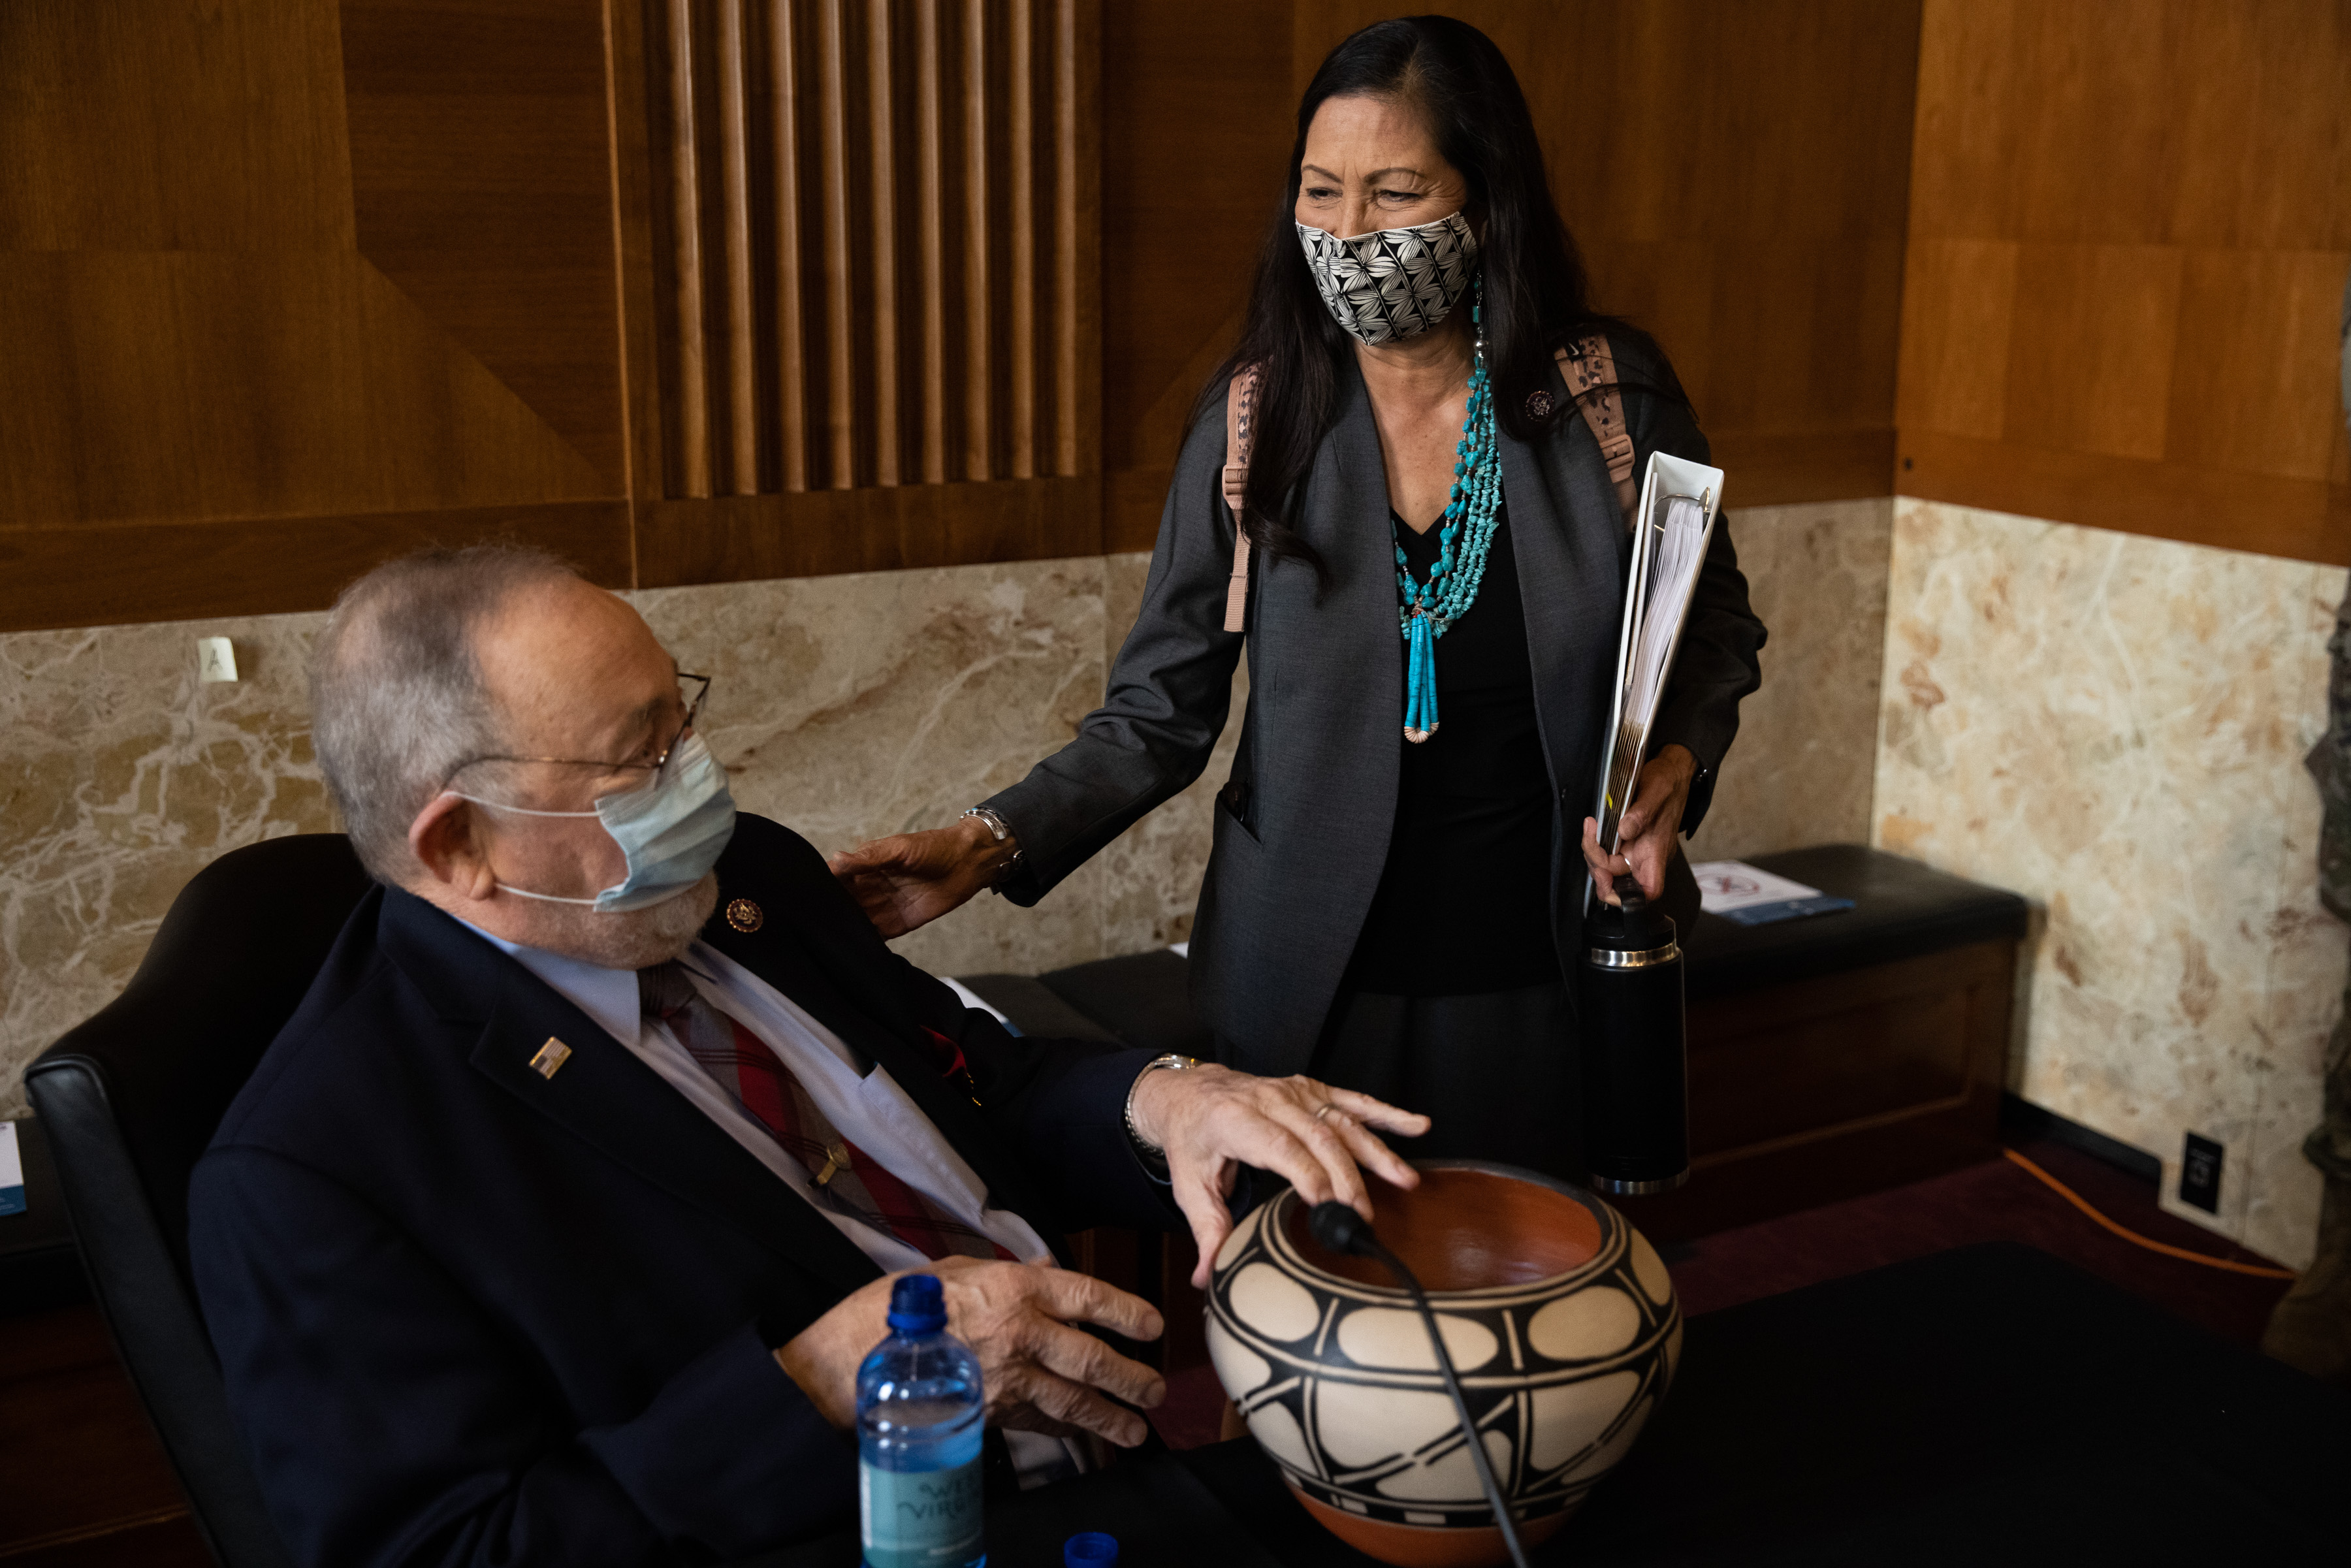 Why pro-drilling Don Young came to back Haaland for Interior - Roll Call